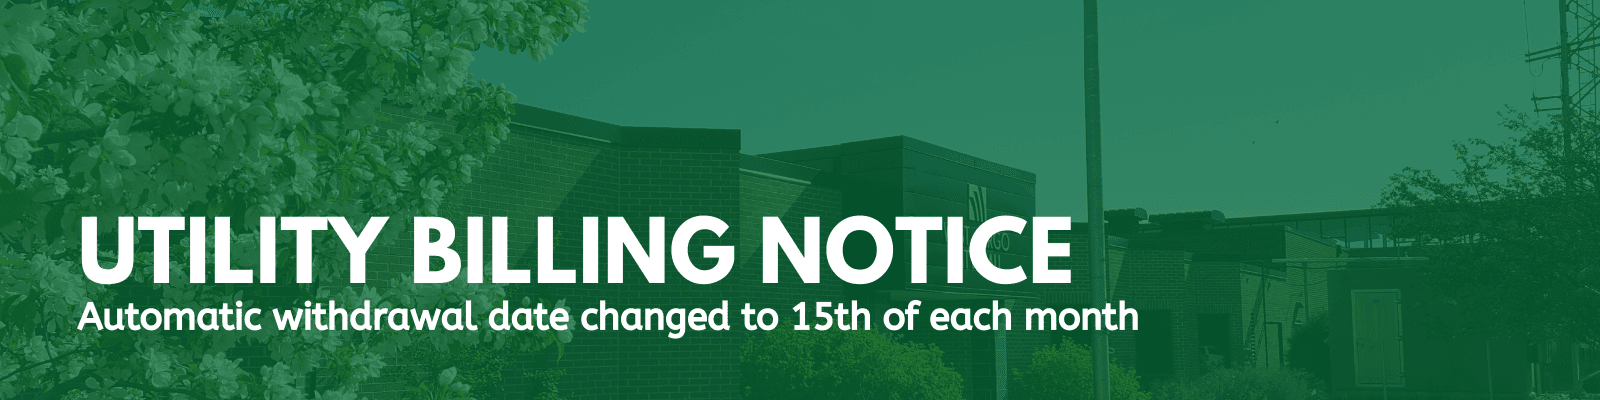 Utility billing notice of withdrawal date change